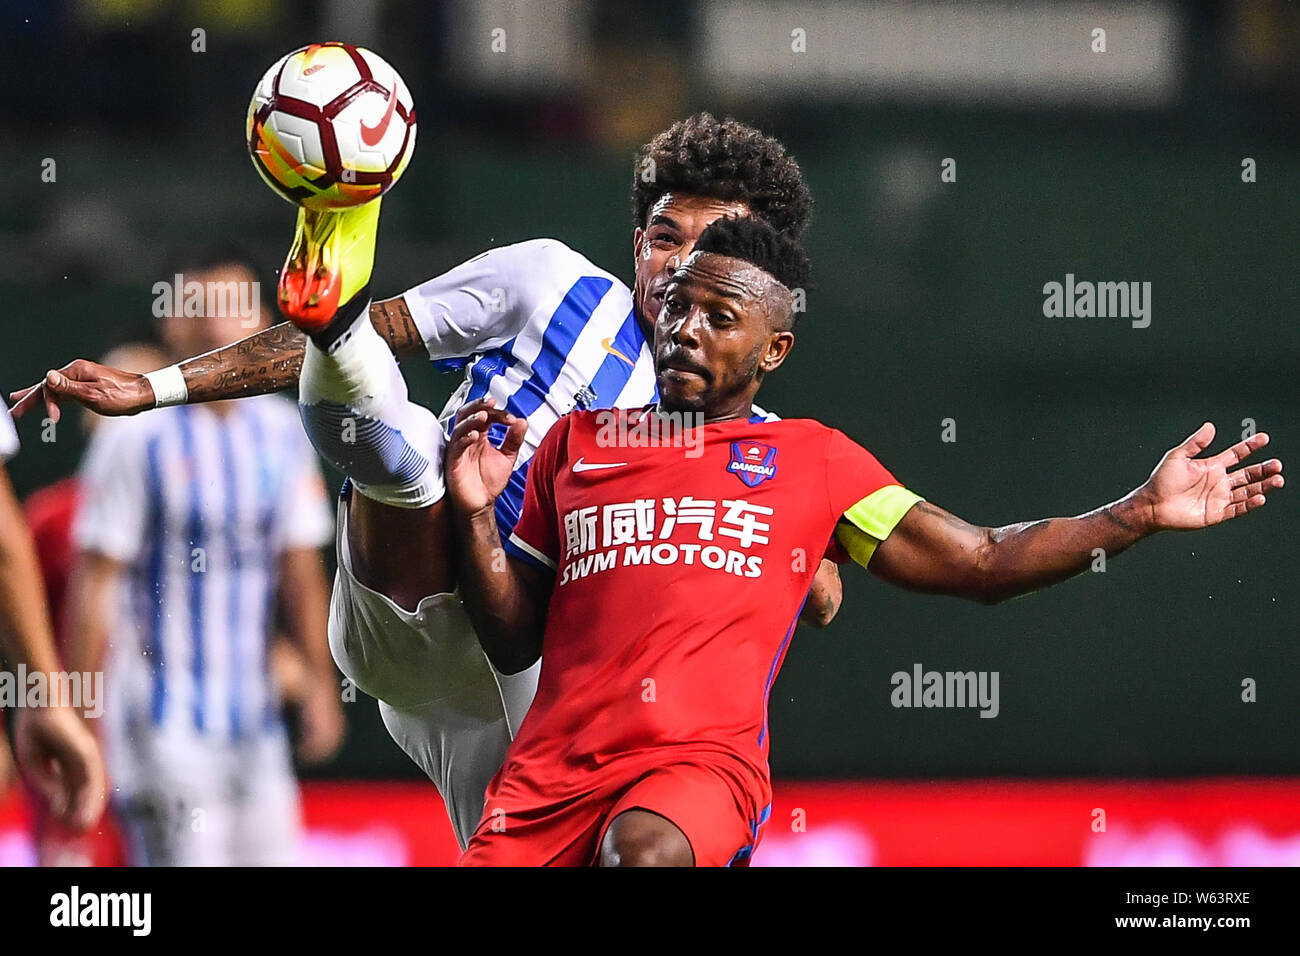 Brazilian football player Fernandinho Henrique, right, of Chongqing SWM passes the ball against Brazilian football player Junior Urso of Guangzhou R&F Stock Photo